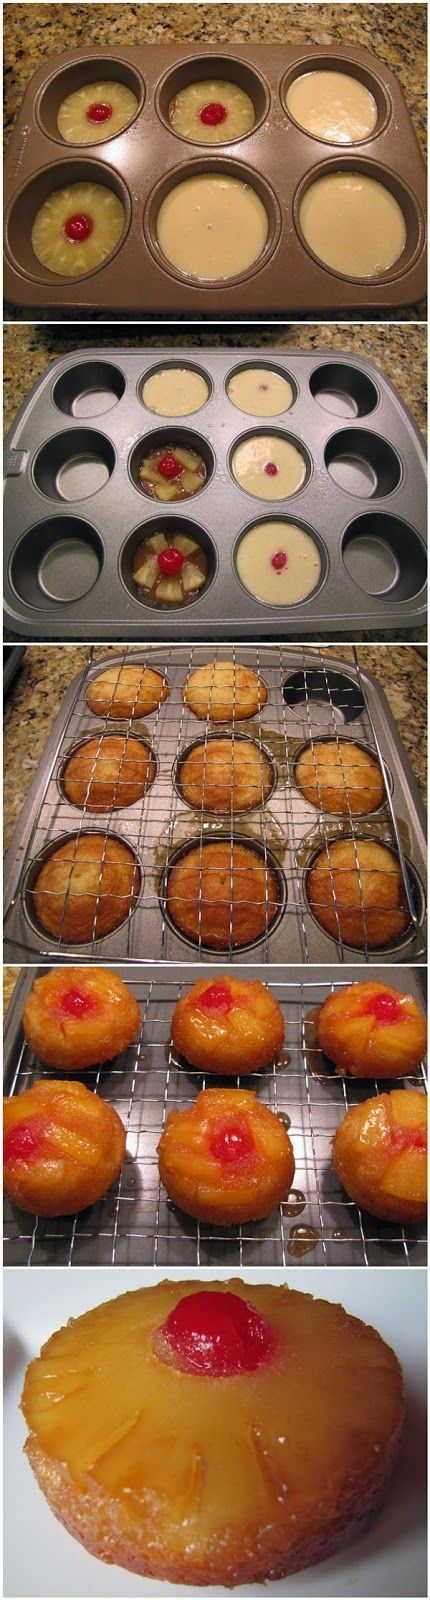 One of my favs and now in Mini Size!  Mini Pineapple Upside Down Cakes Recipe